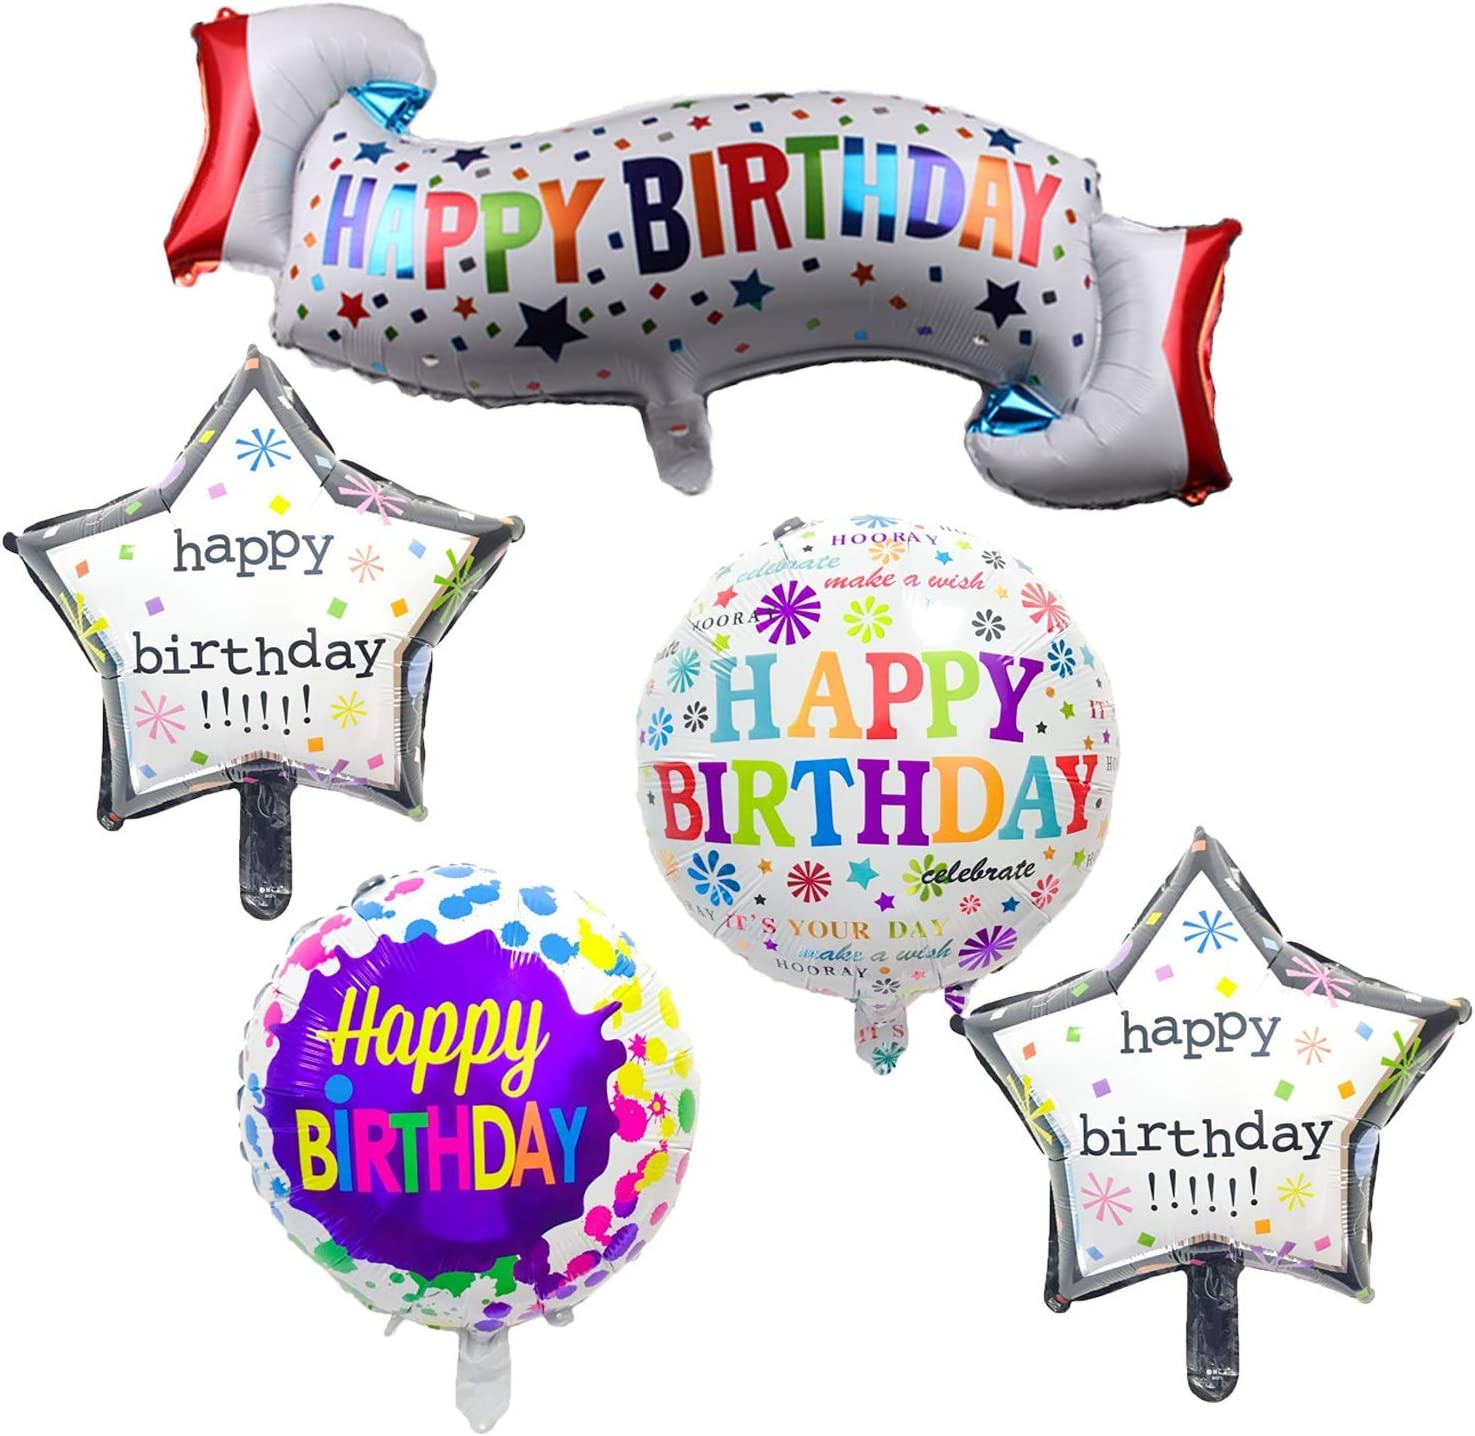 5Pcs//Set Cute Baby Shape Series Foil Balloons Happy Birthday Party Decor Gift US